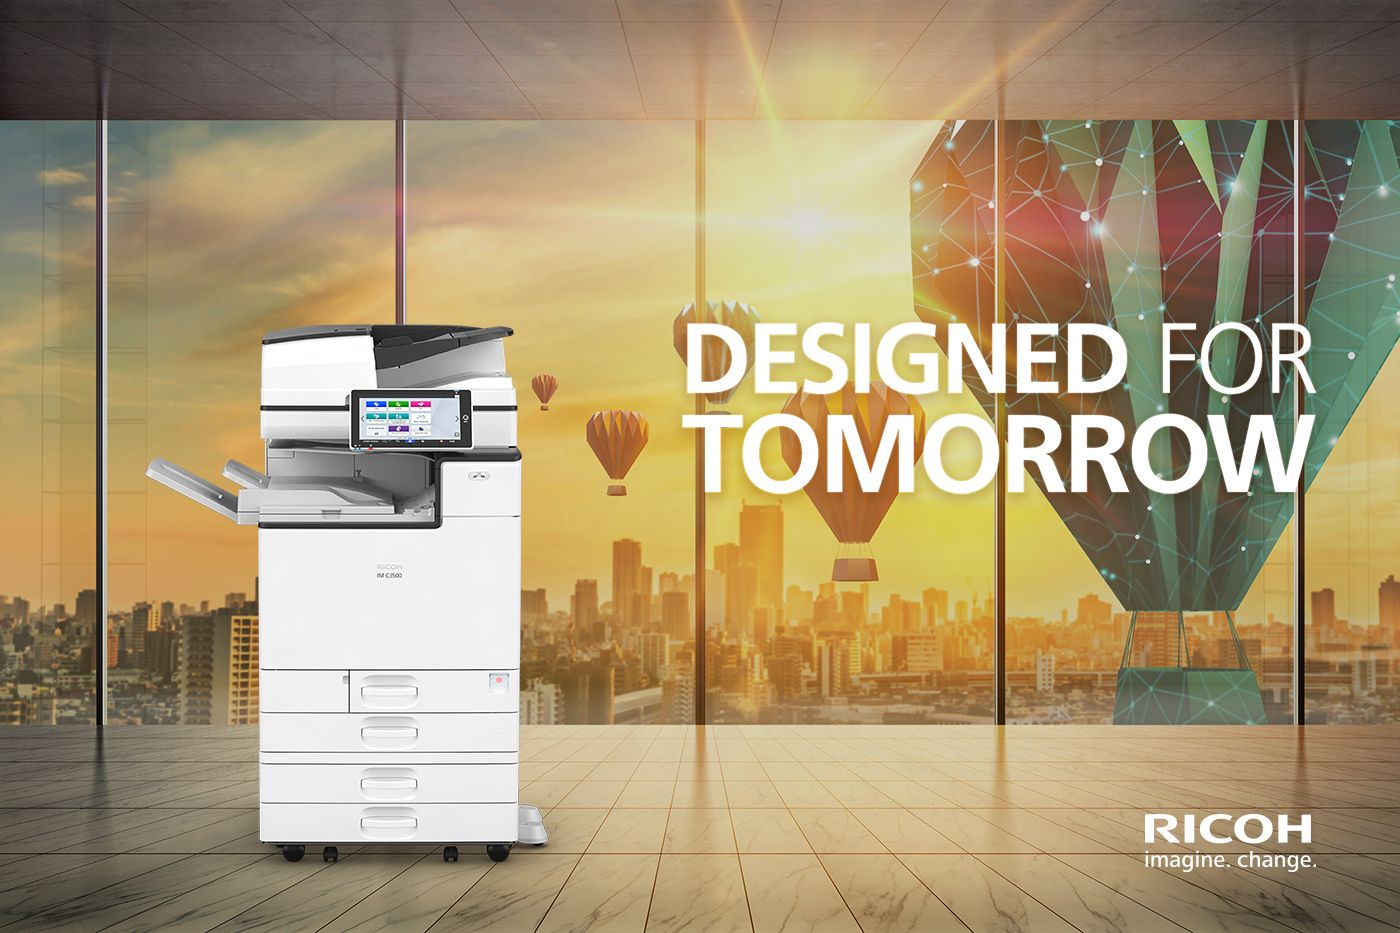 Foto de Ricoh Designed for Tomorrow